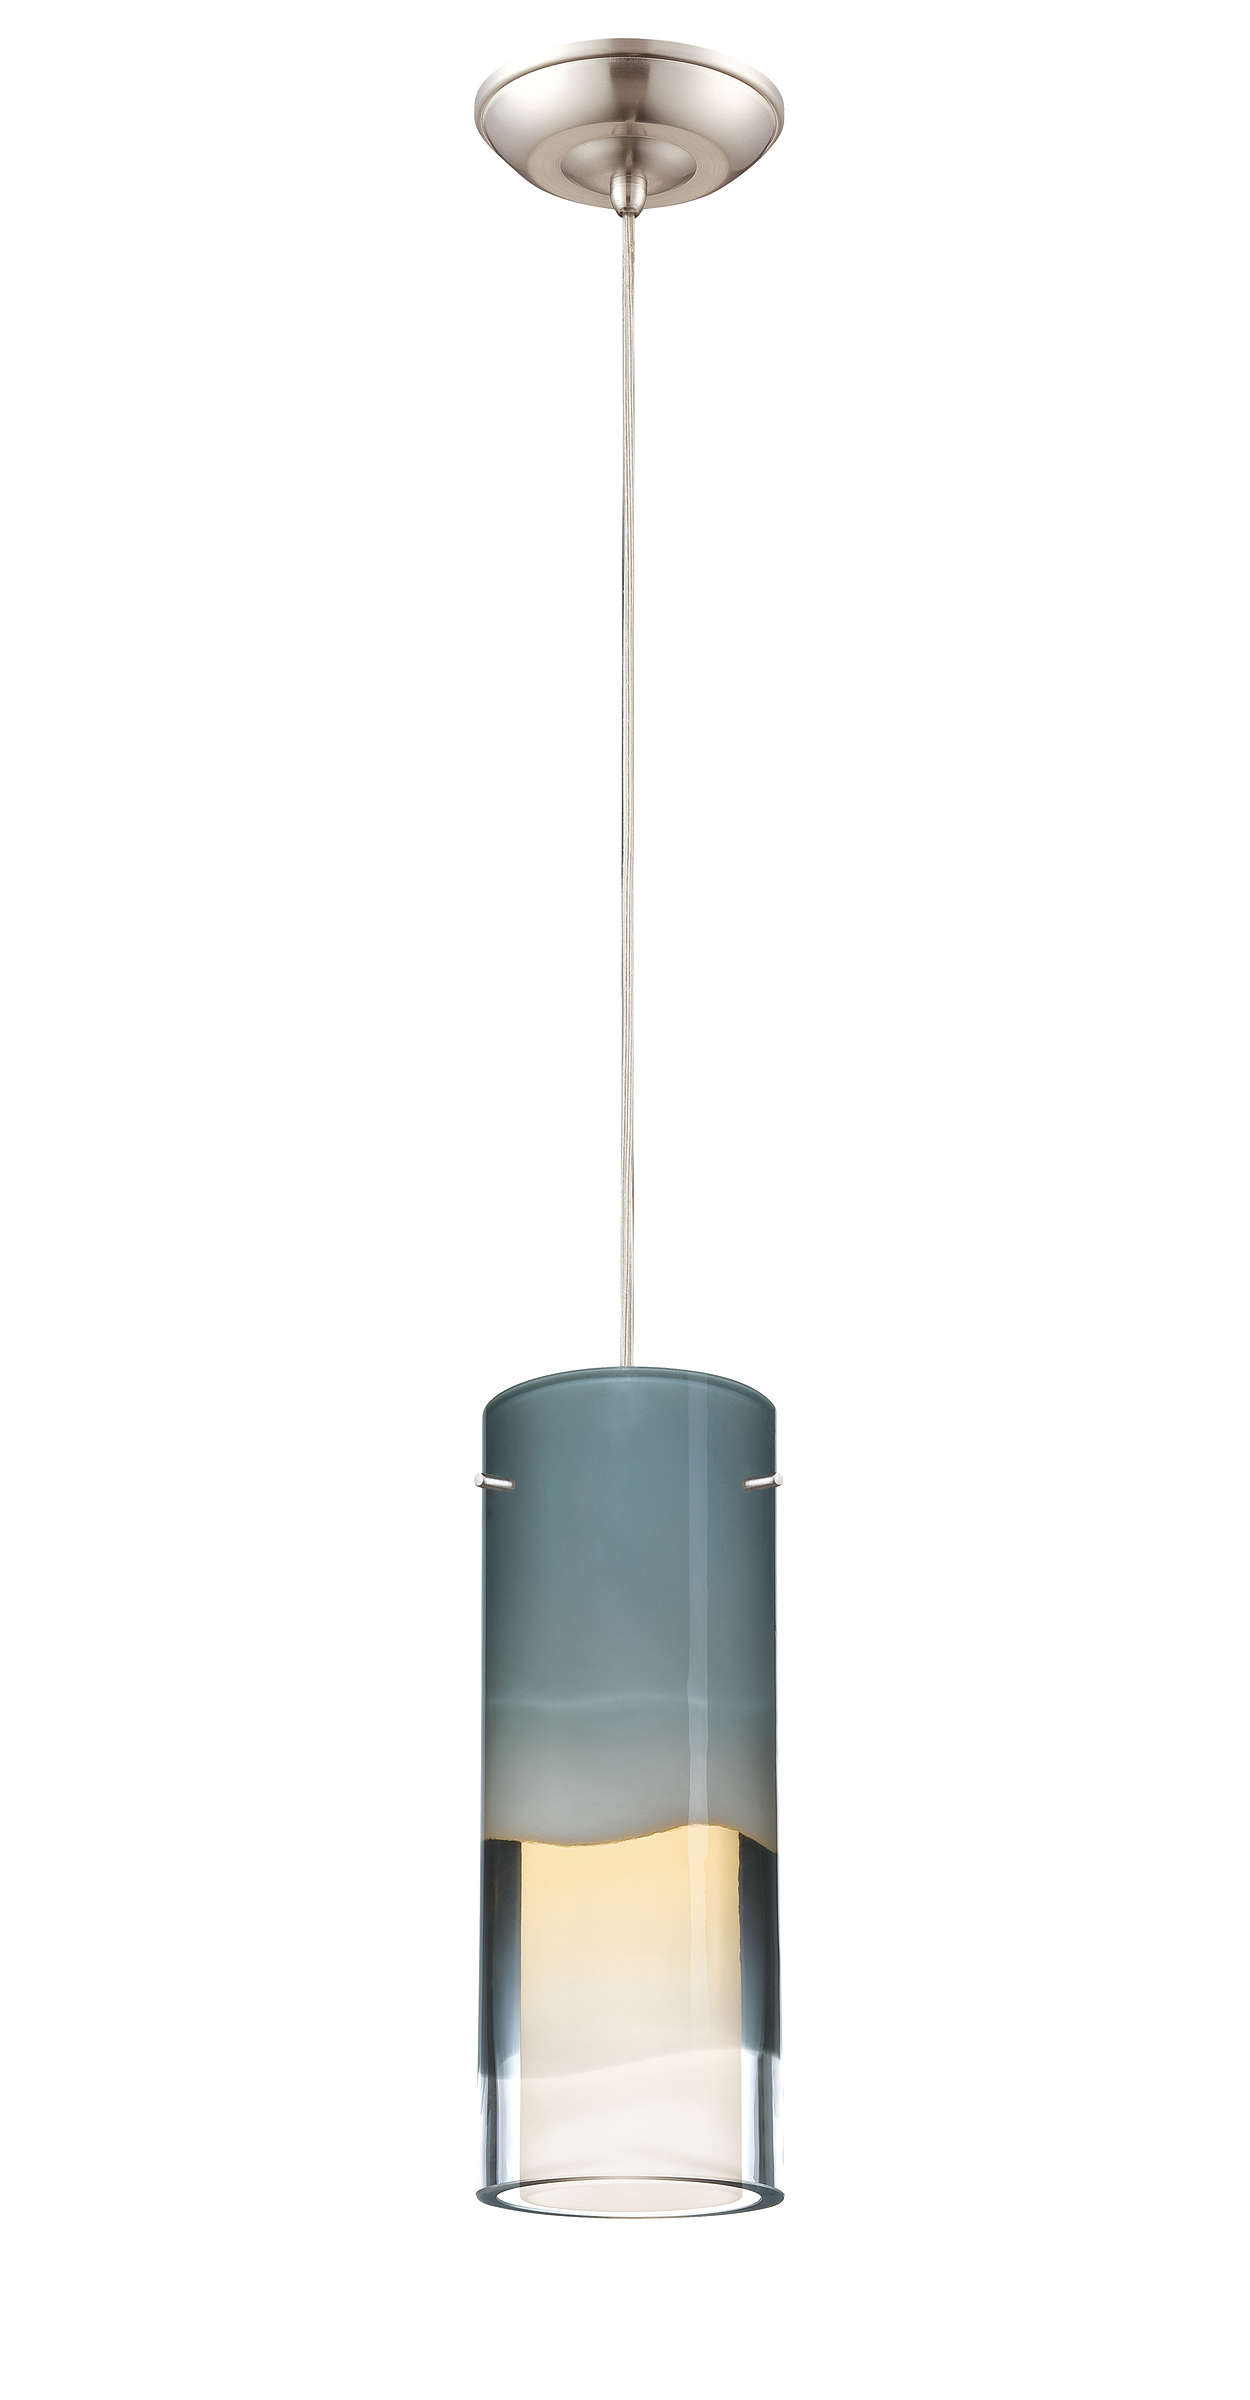 Capri LED pendant in Satin Nickel finish